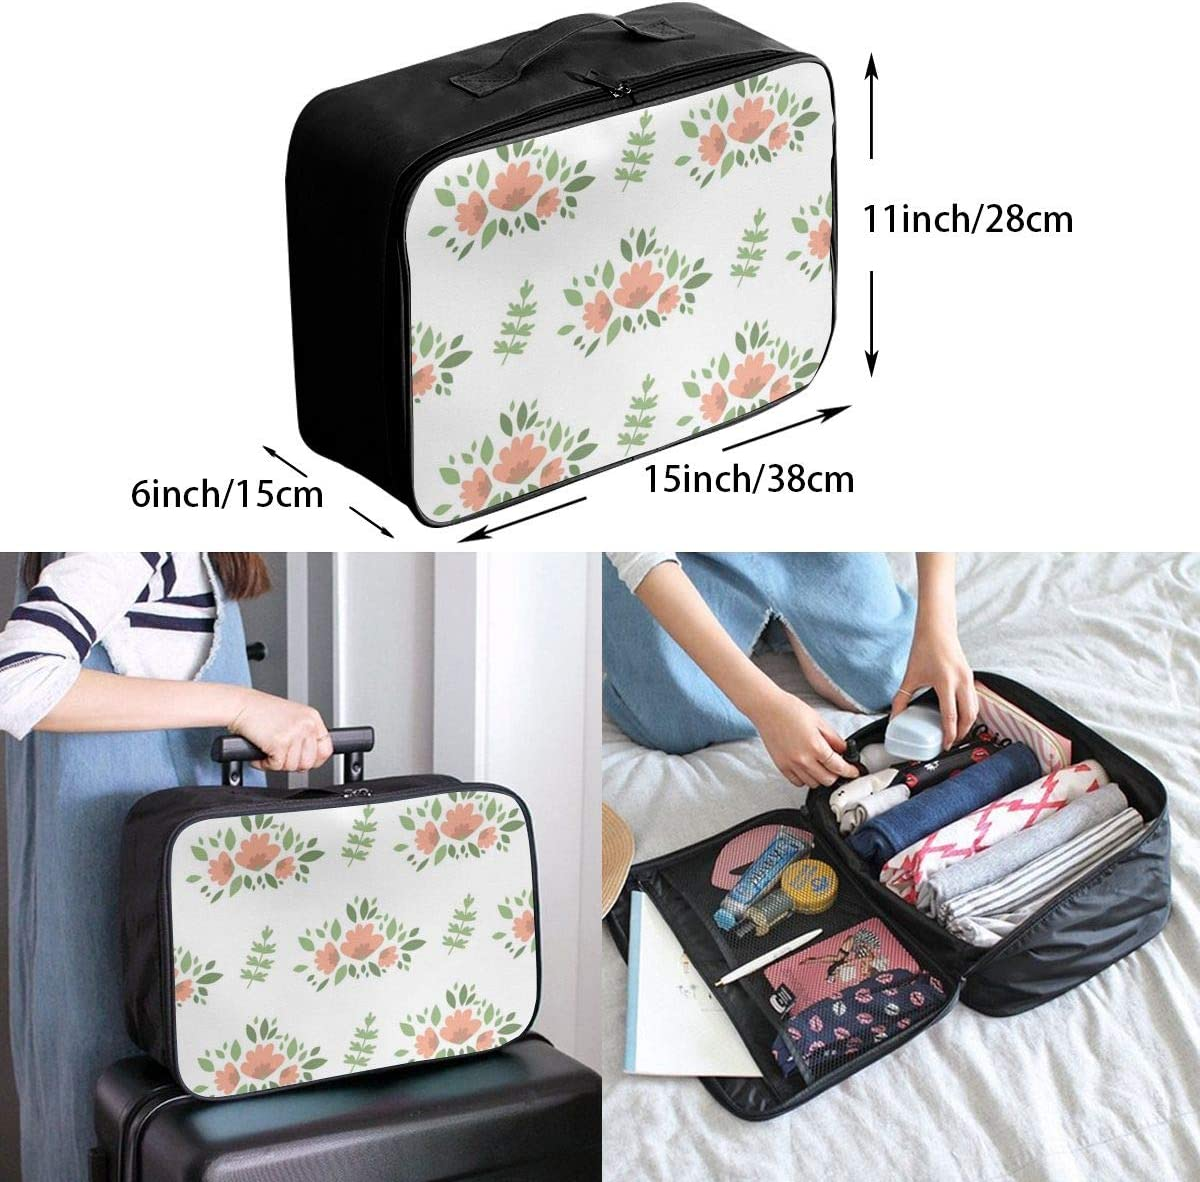 Yunshm Doodle Style With Flowers Personalized Trolley Handbag Waterproof Unisex Large Capacity For Business Travel Storage